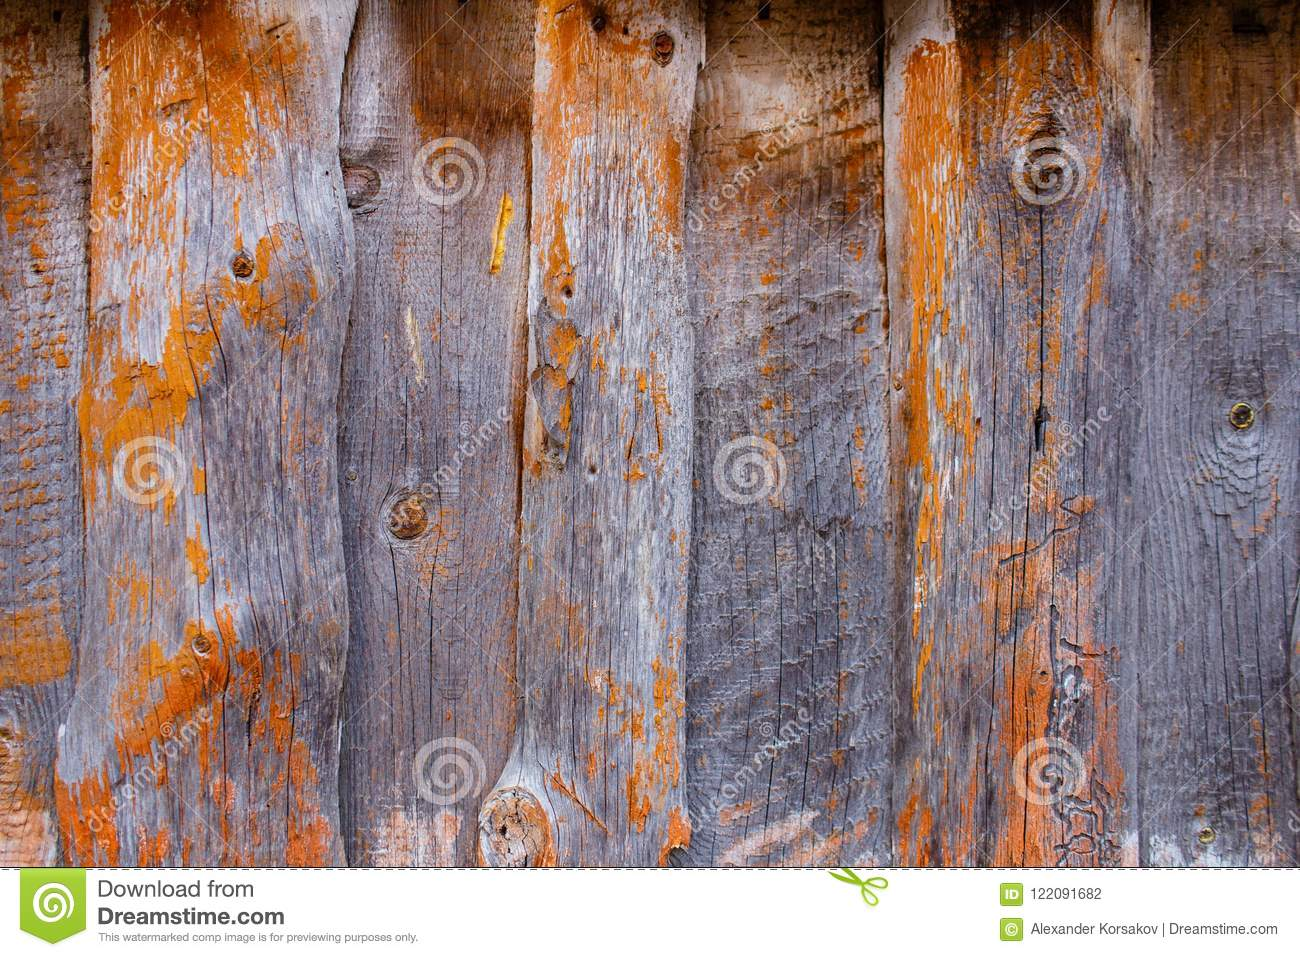 Jpg Texture Background Free Stock Photos Download 105 545: Vintage Wooden Texture, Rural Area Stock Photo